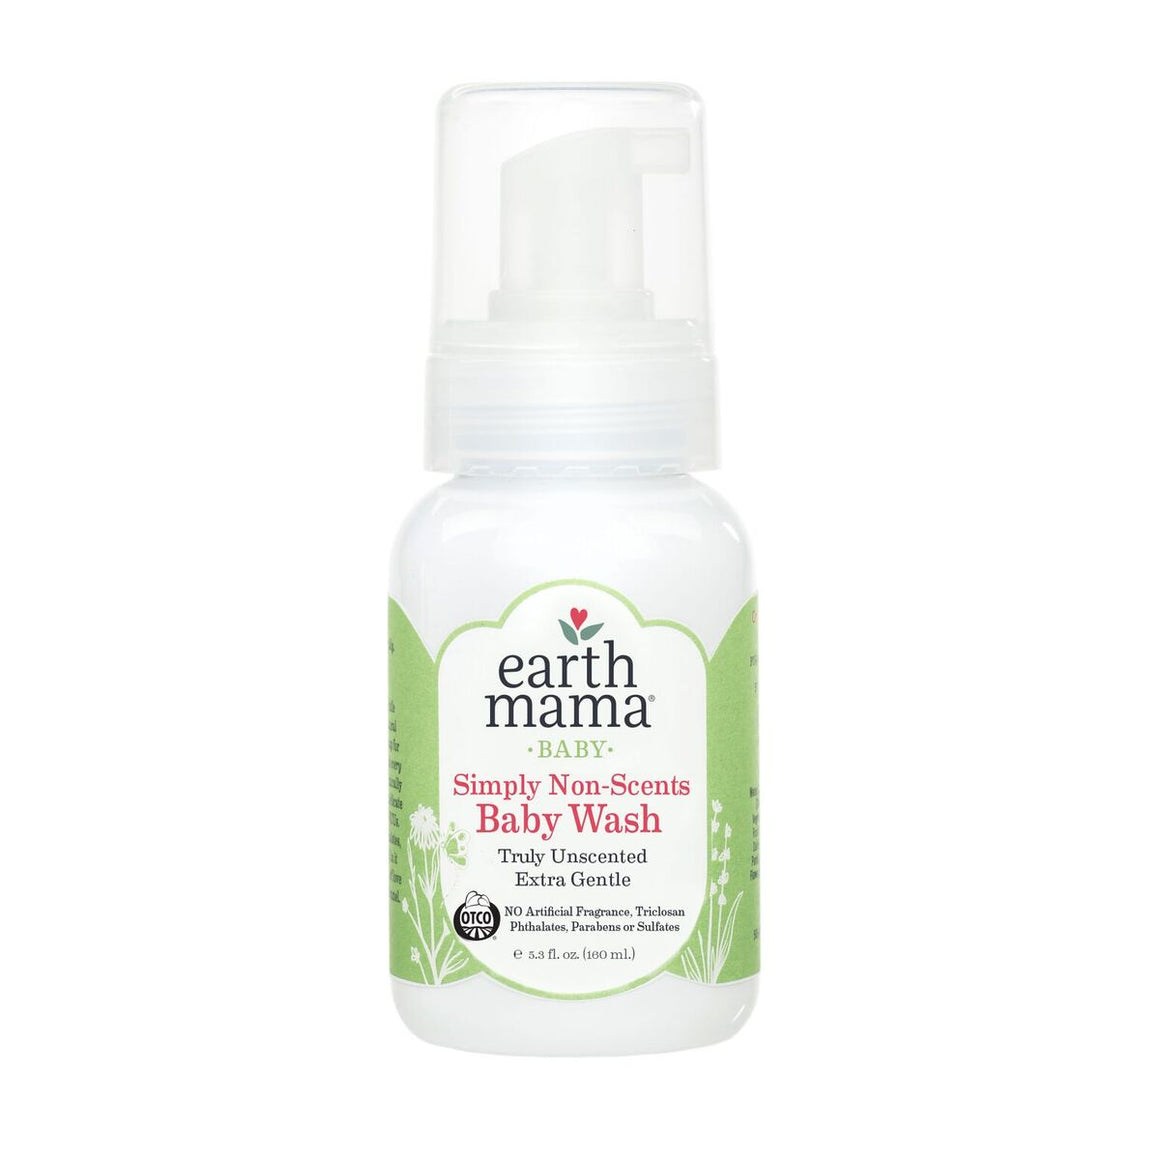 Earth Mama Organics Shampoo & Body Wash, foaming dispenser, made in the usa